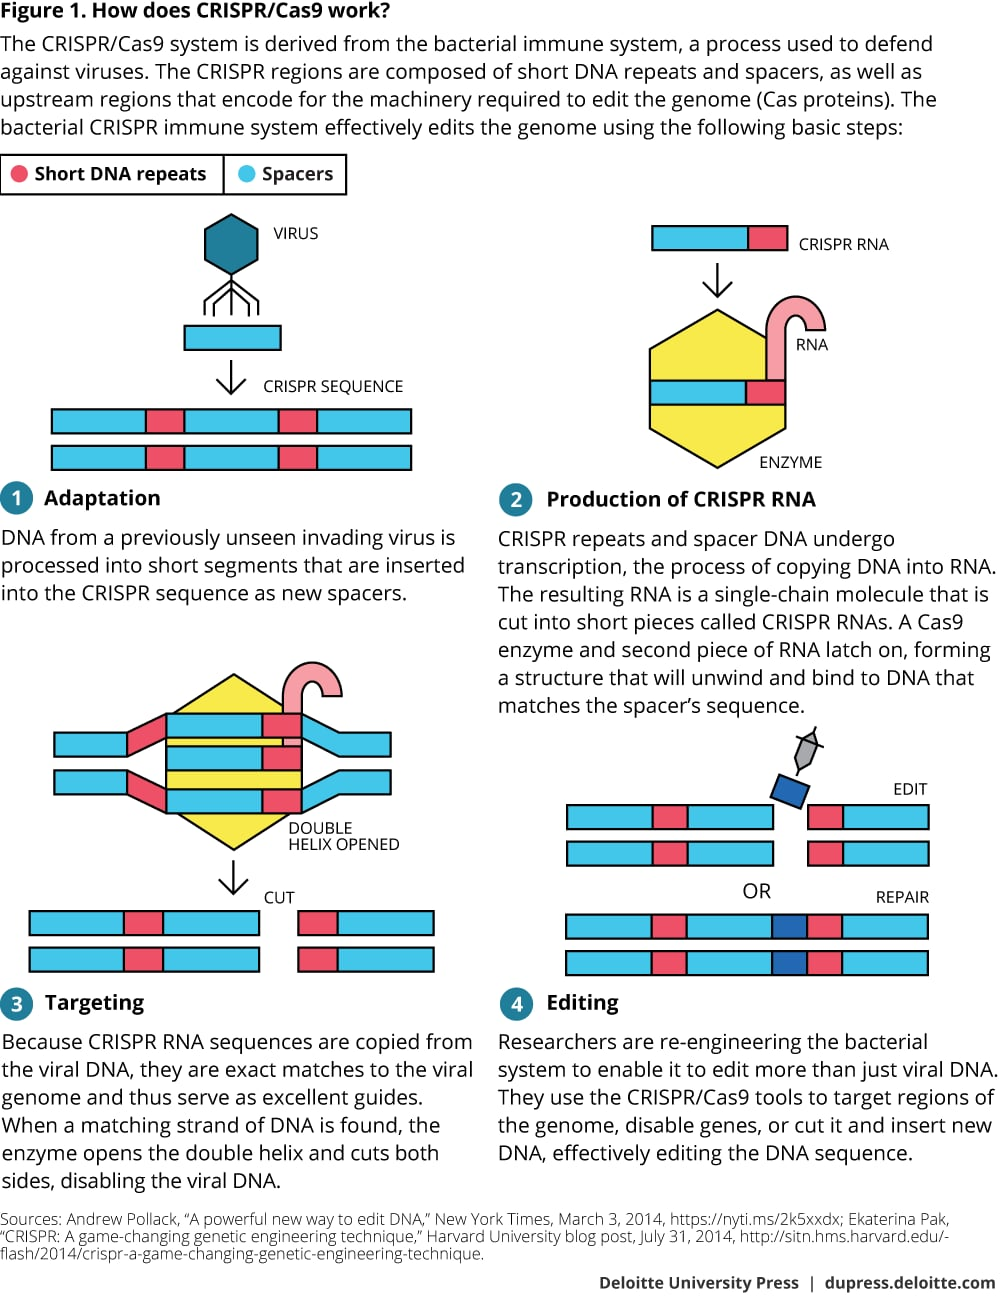 Figure 1. How does CRISPR/Cas9 work?